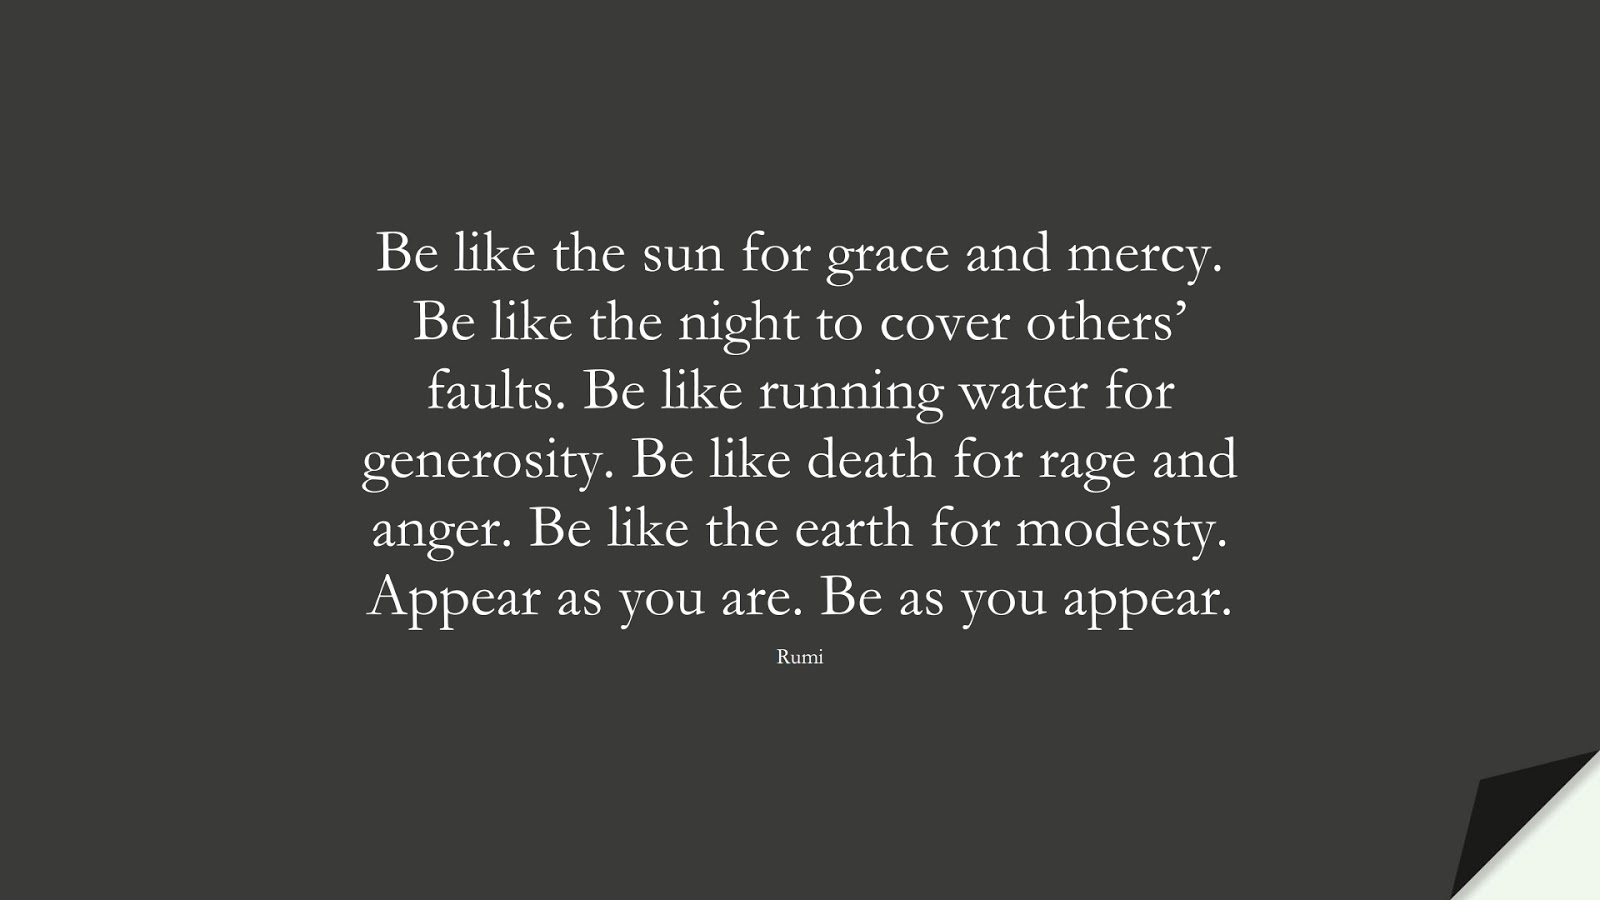 Be like the sun for grace and mercy. Be like the night to cover others' faults. Be like running water for generosity. Be like death for rage and anger. Be like the earth for modesty. Appear as you are. Be as you appear. (Rumi);  #RumiQuotes